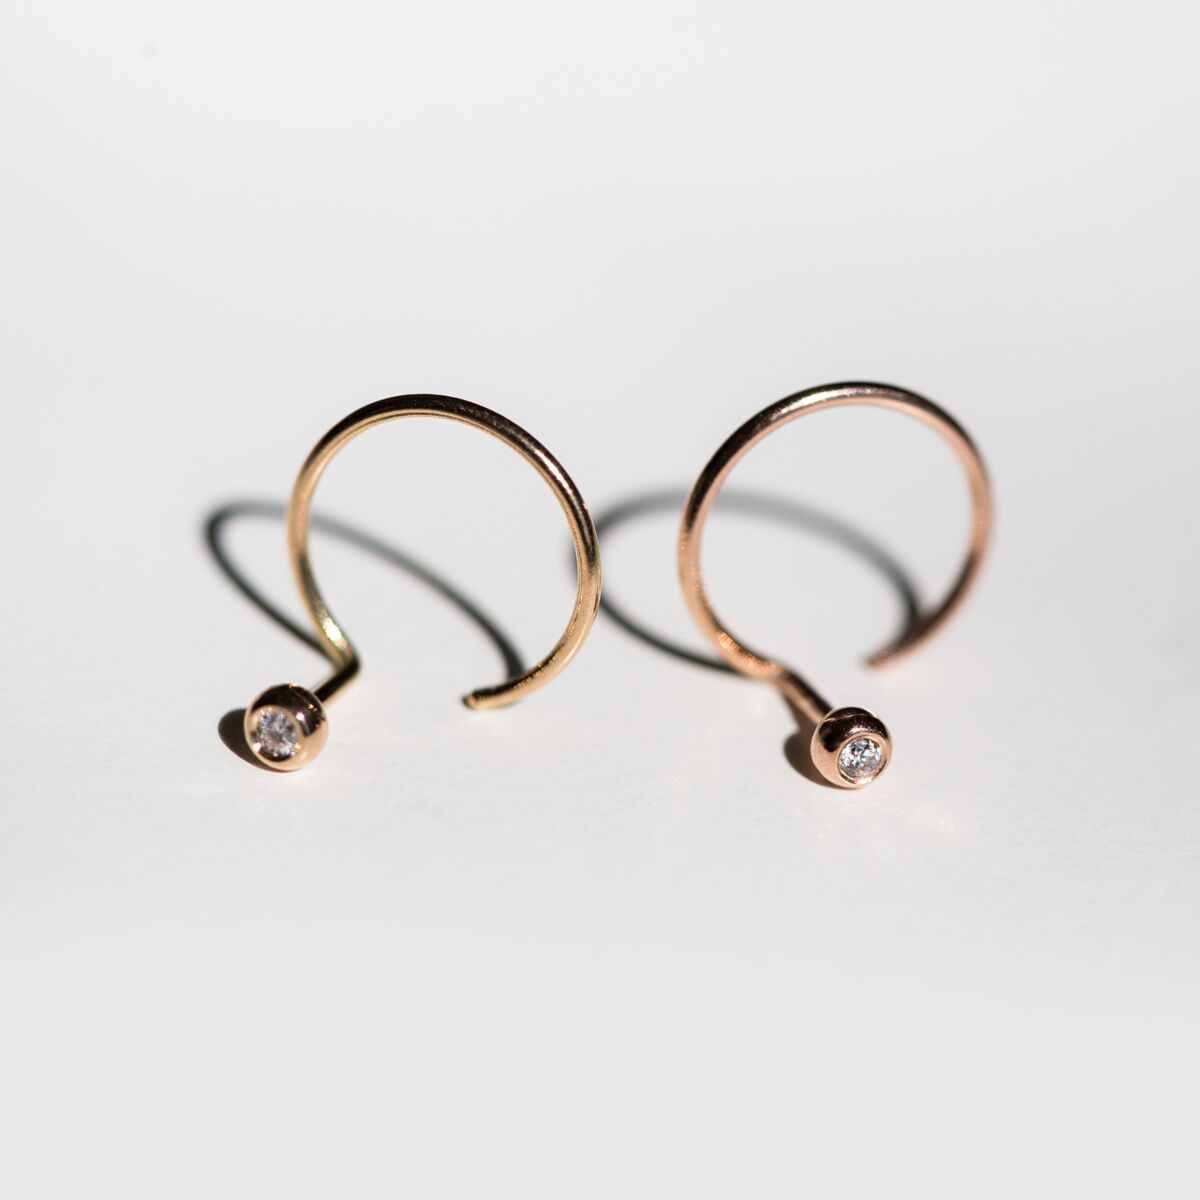 Diamond Ear Nut Earring, Yellow Gold (SINGLE) image